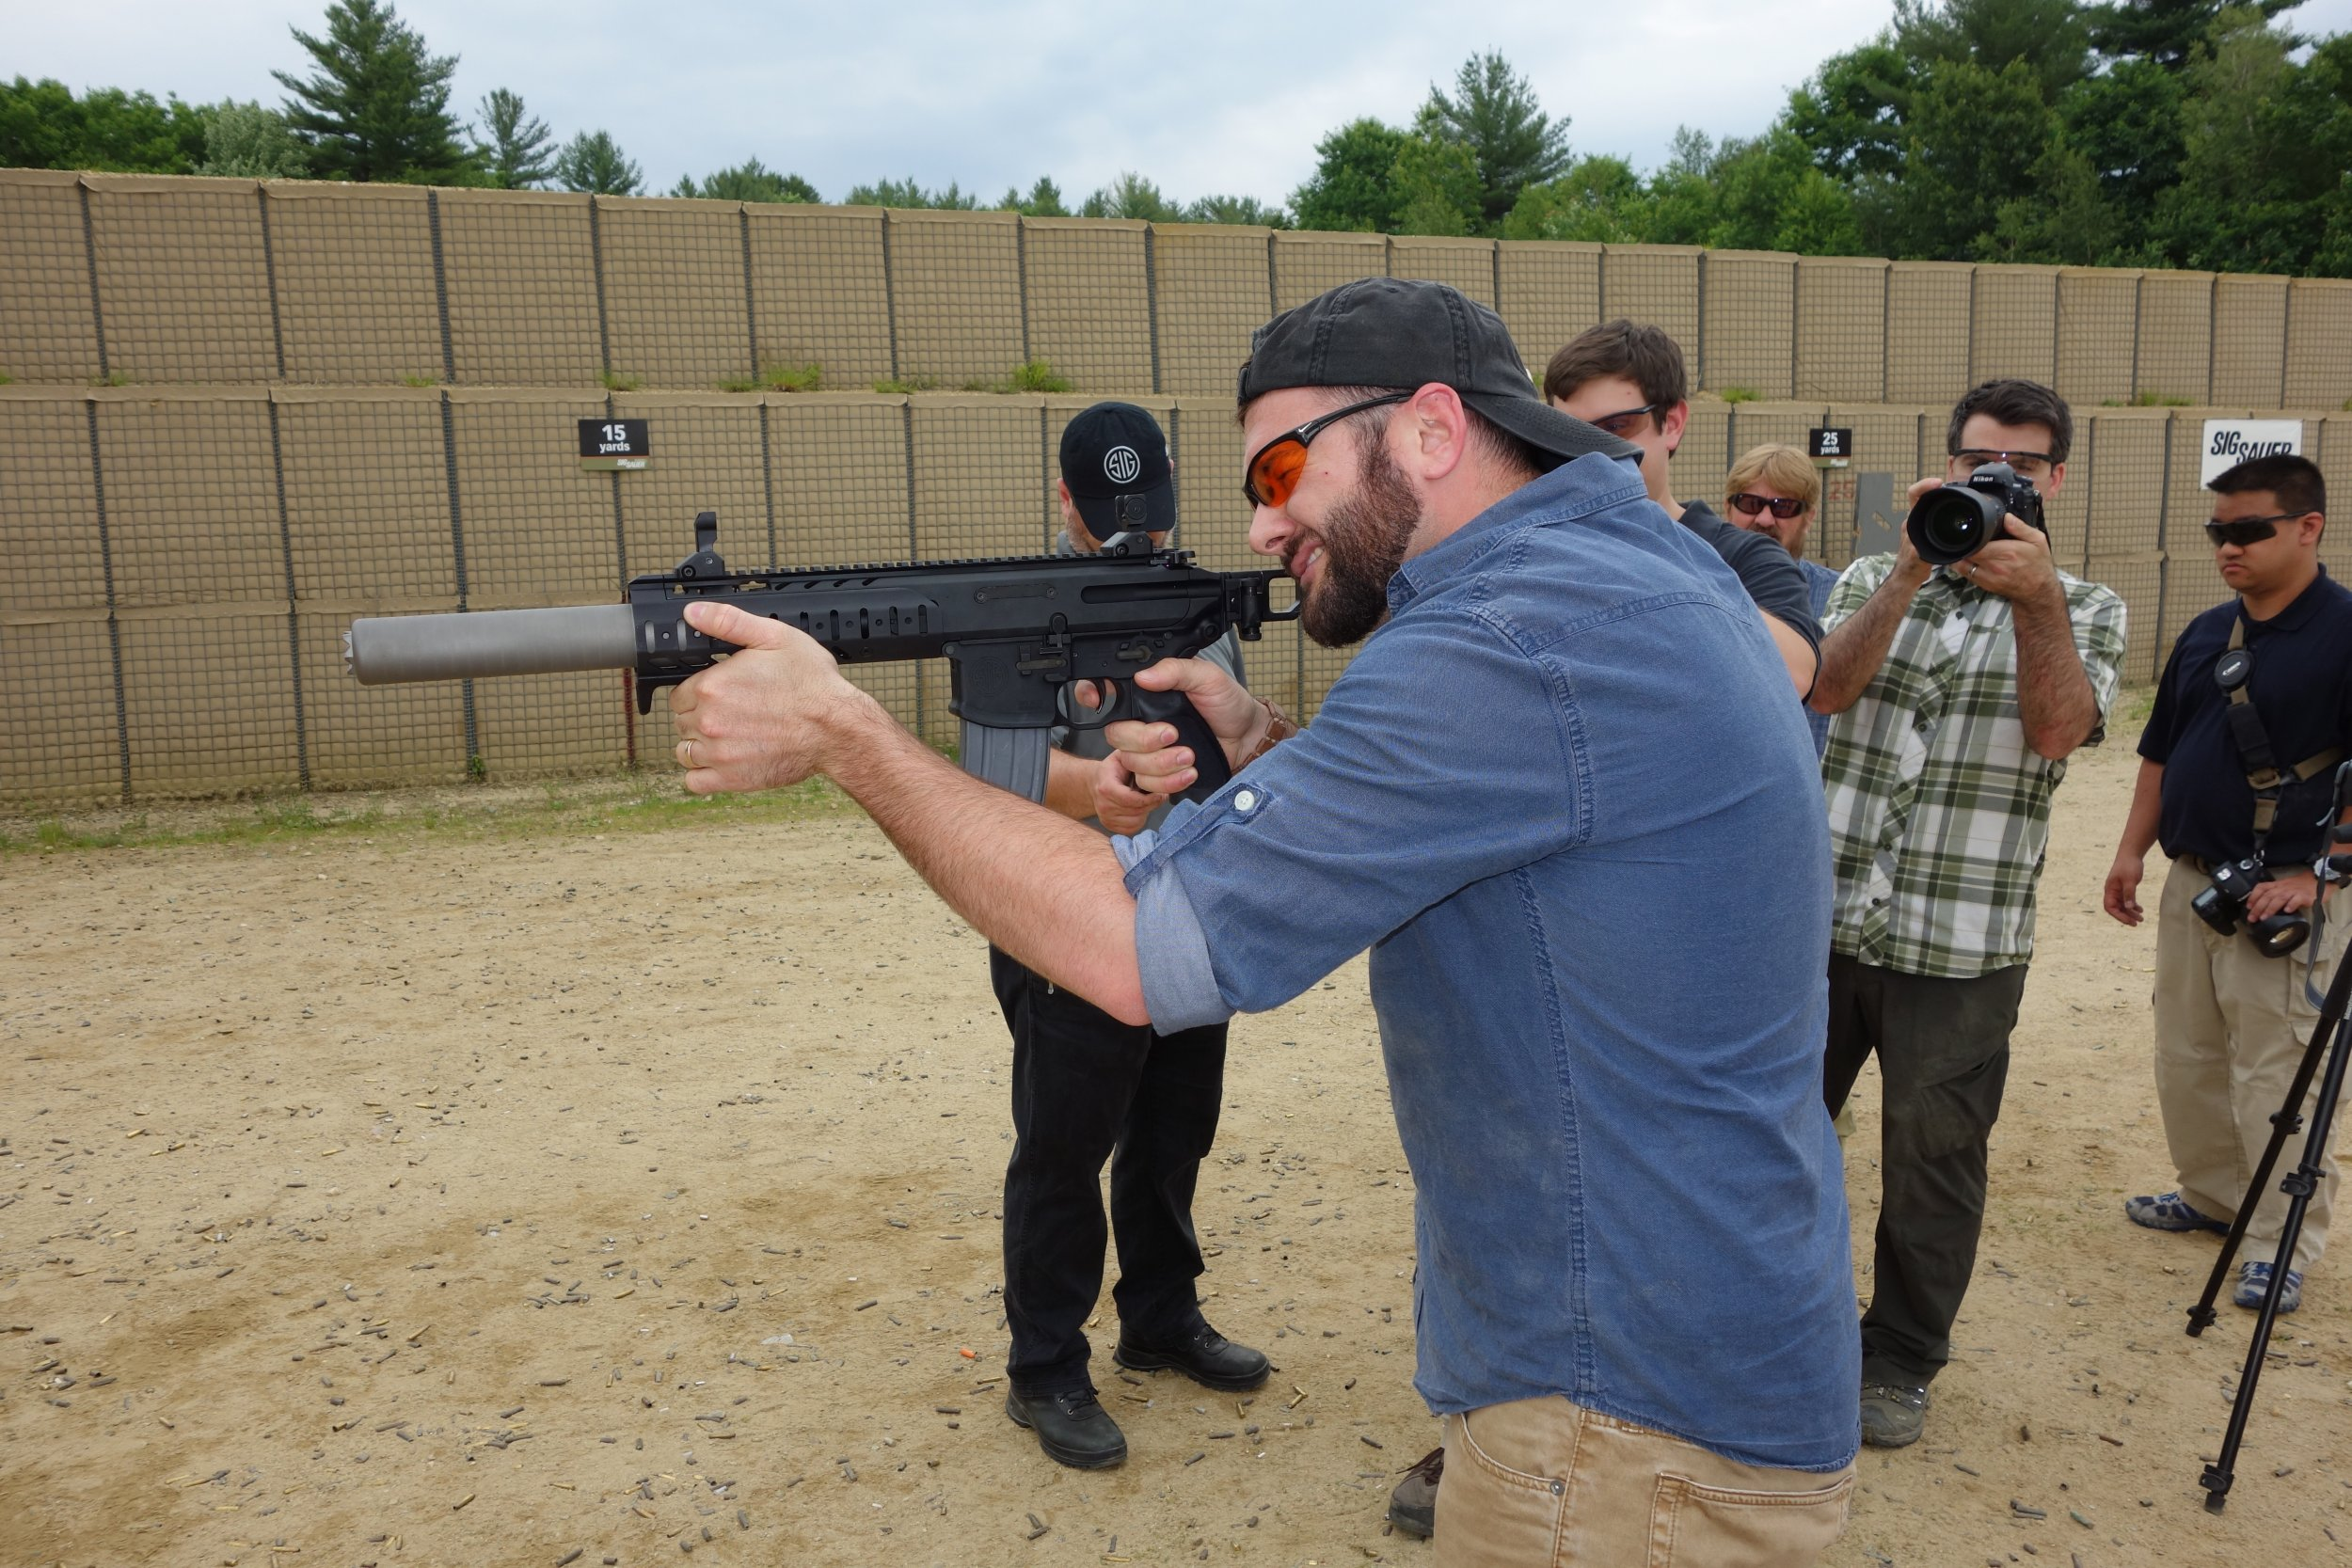 SIG SAUER SIG MCX Multi Caliber AR Assault Rifle Carbine SBR 300 Blackout 300BLK Suppressed SIG SAUER Academy New Media Writers Event 2014 David Crane DefenseReview.com DR 2 SIG MCX LVAW (Low Visibility Assault Weapon) Black Mamba Suppressed 300 Blackout (300BLK) Piston AR Assault SBR/PDW (Short Barreled Rifle/Personal Defense Weapon) Fired on Full Auto and Semi Auto with Subsonic and Supersonic Ammo During SIG SAUER New Media Writers Event (Video!)